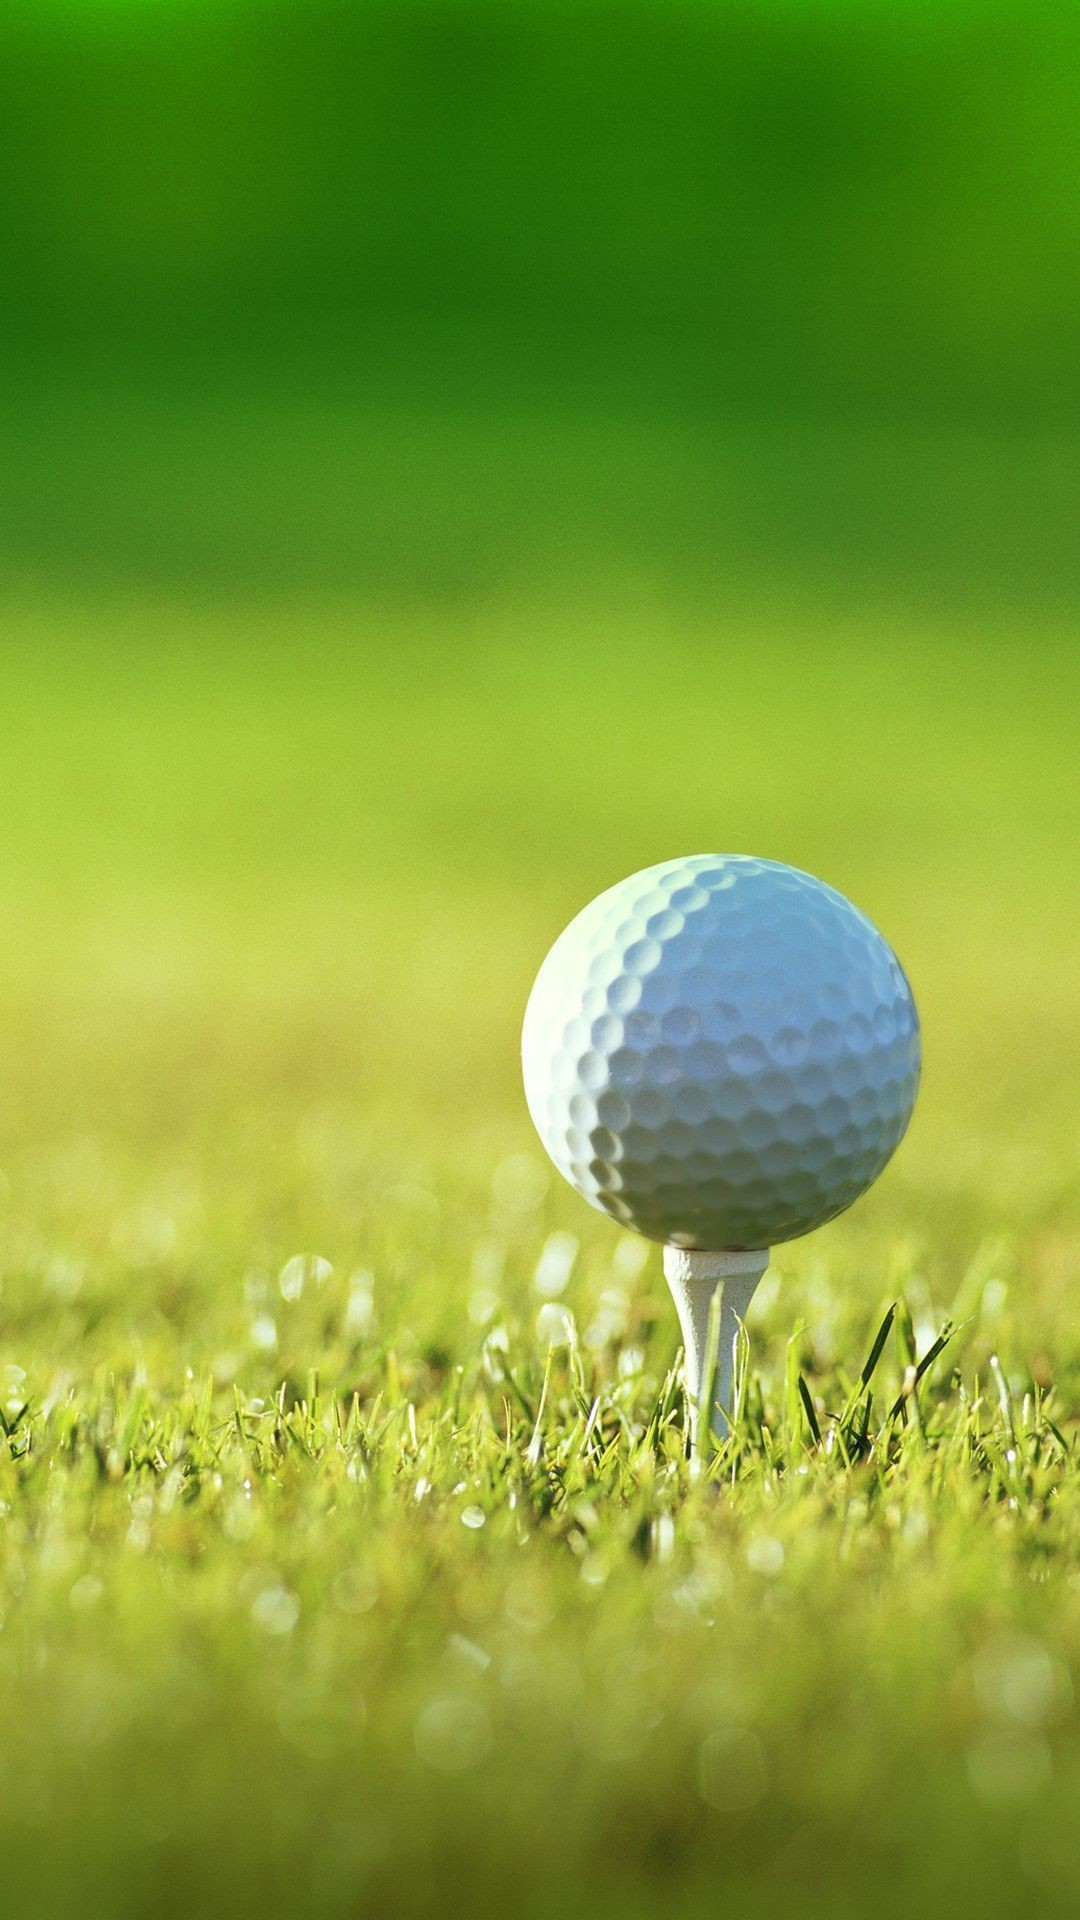 Res: 1080x1920, Golf-for-LG-Nexus-hd-android-free-download-